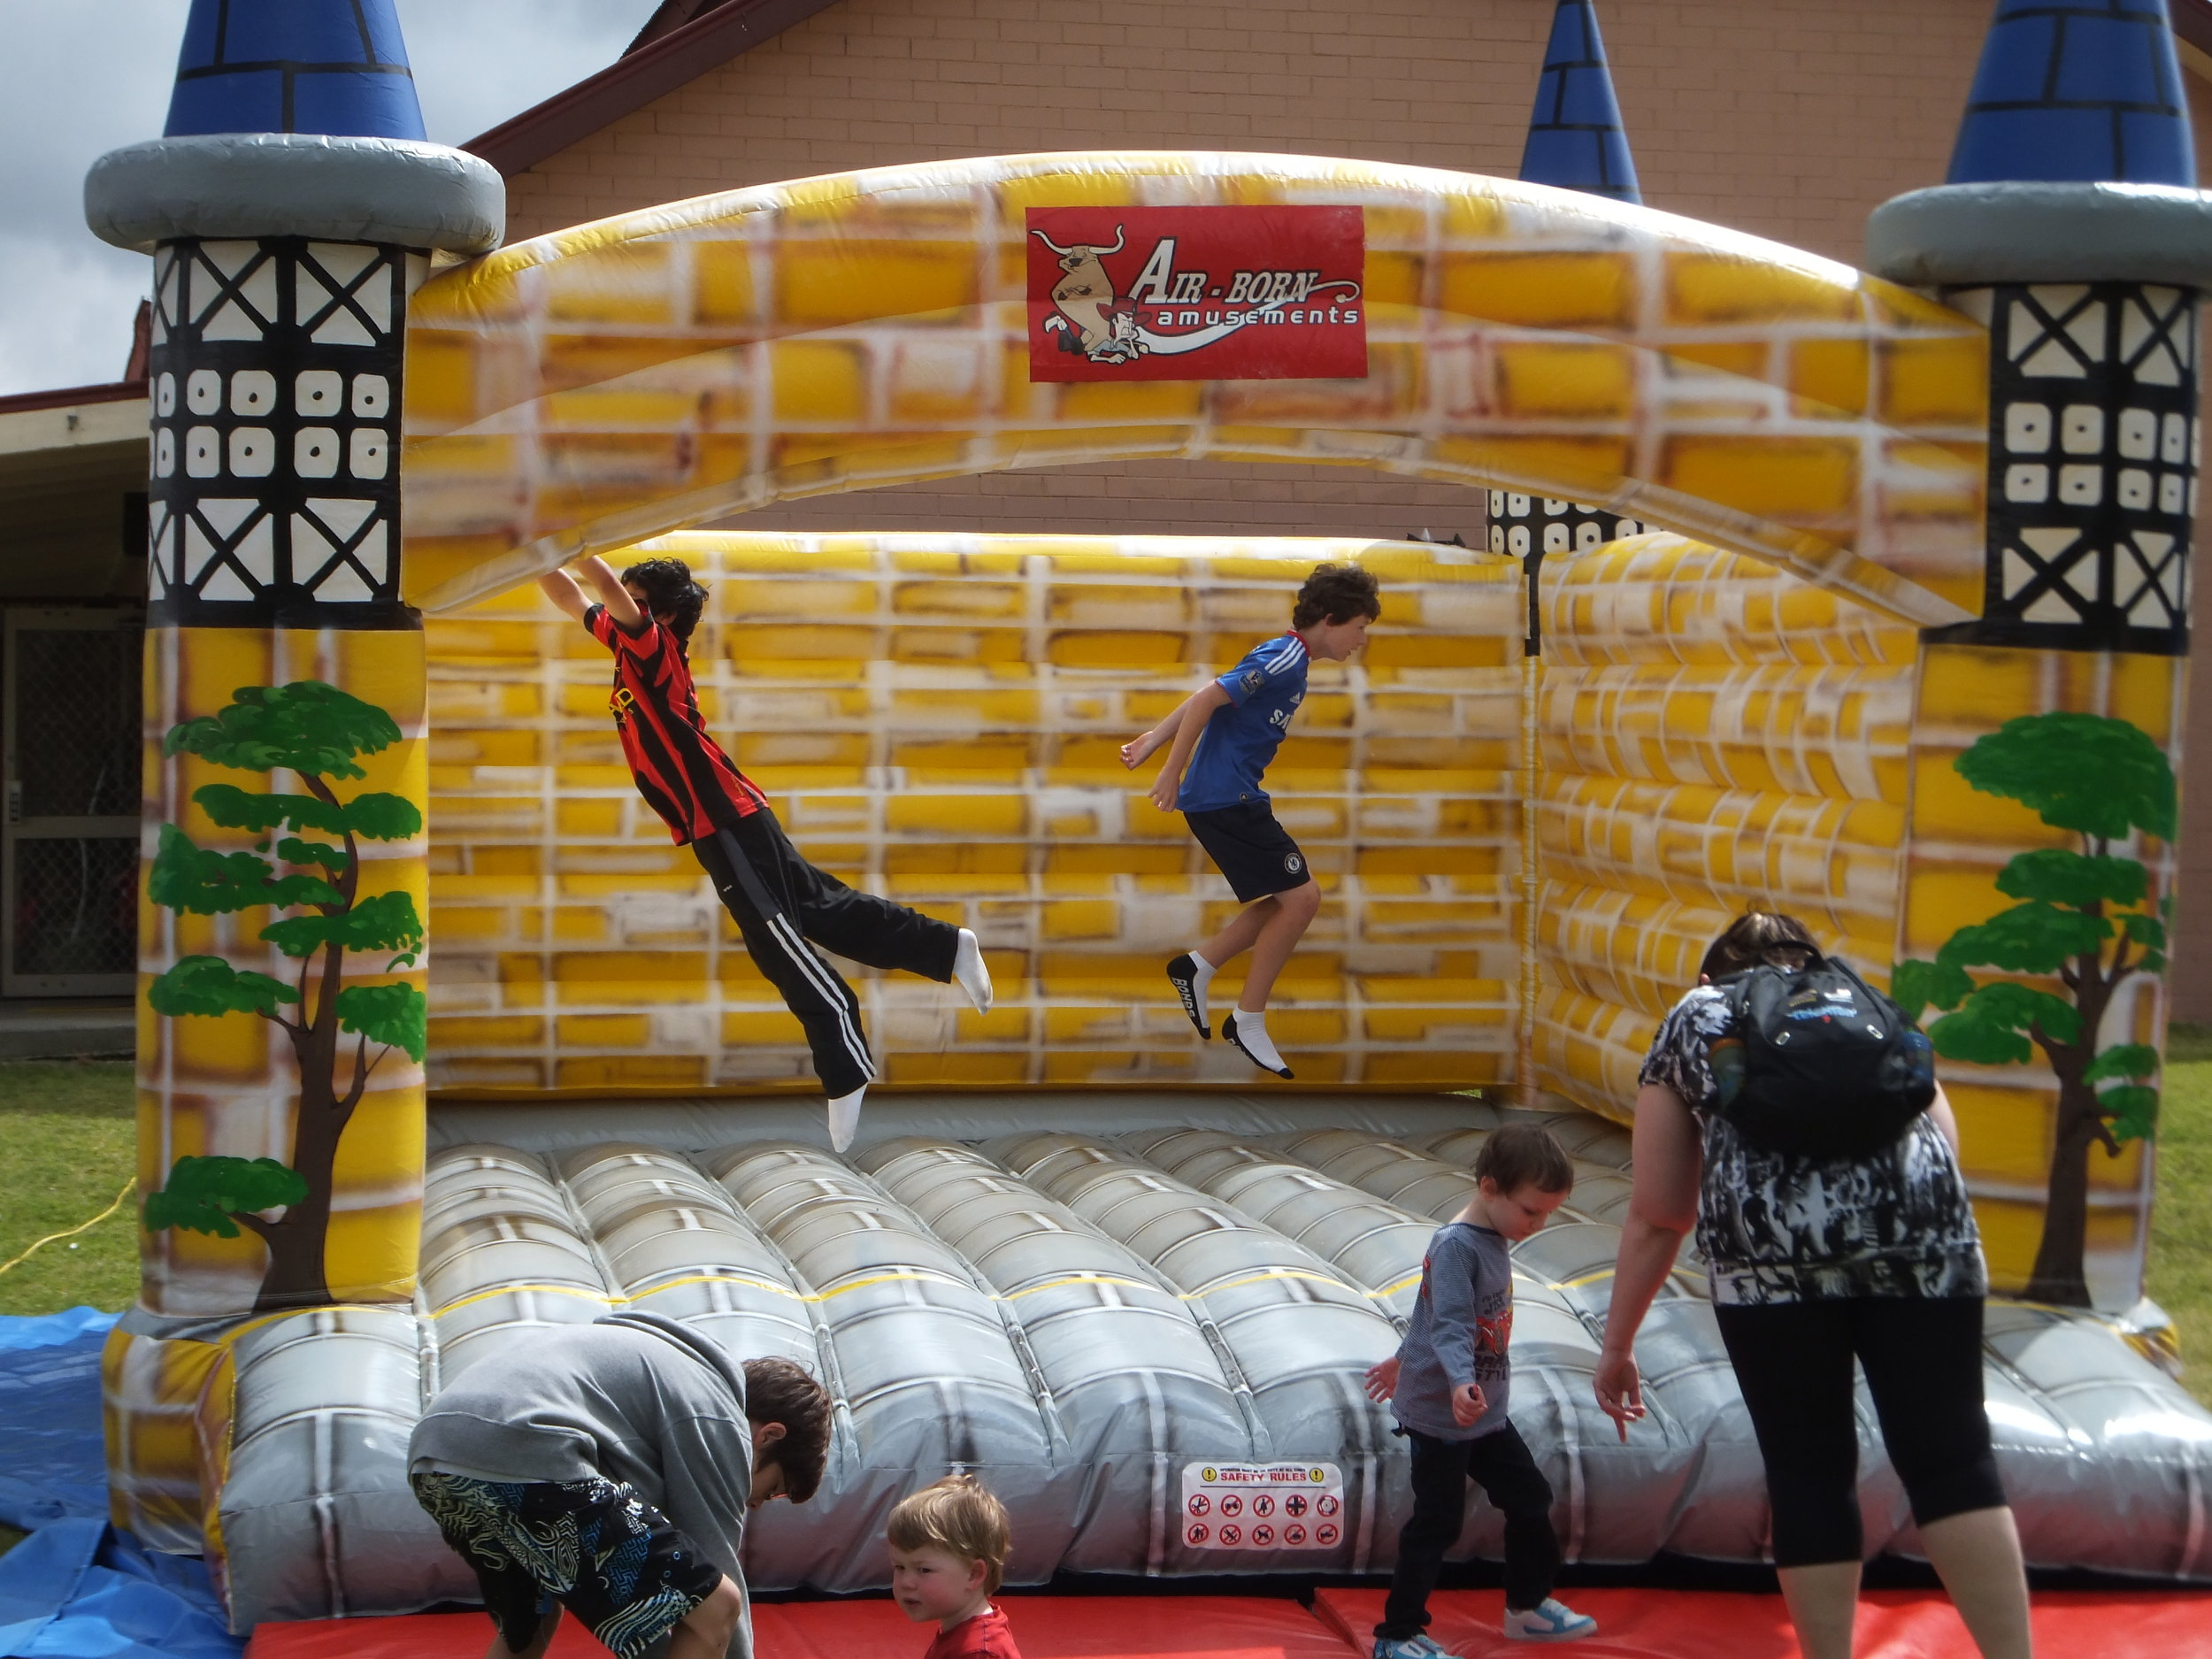 ROYAL BOUNCY CASTLE